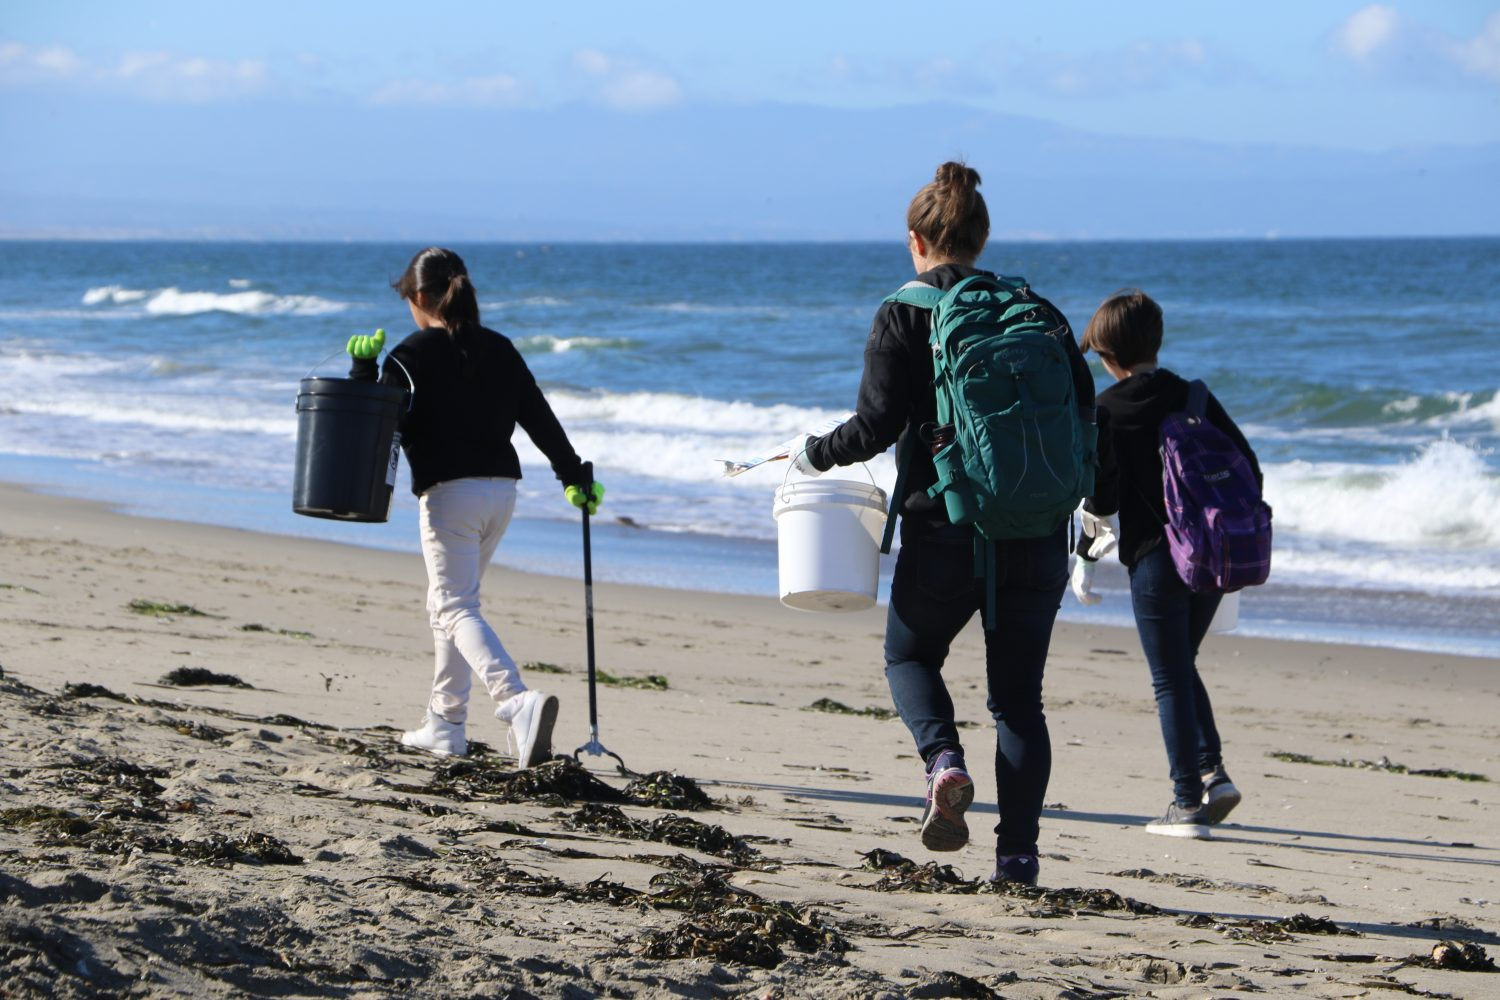 Three girls walk on a beach on a clear blue day with buckets and gloves in hand.